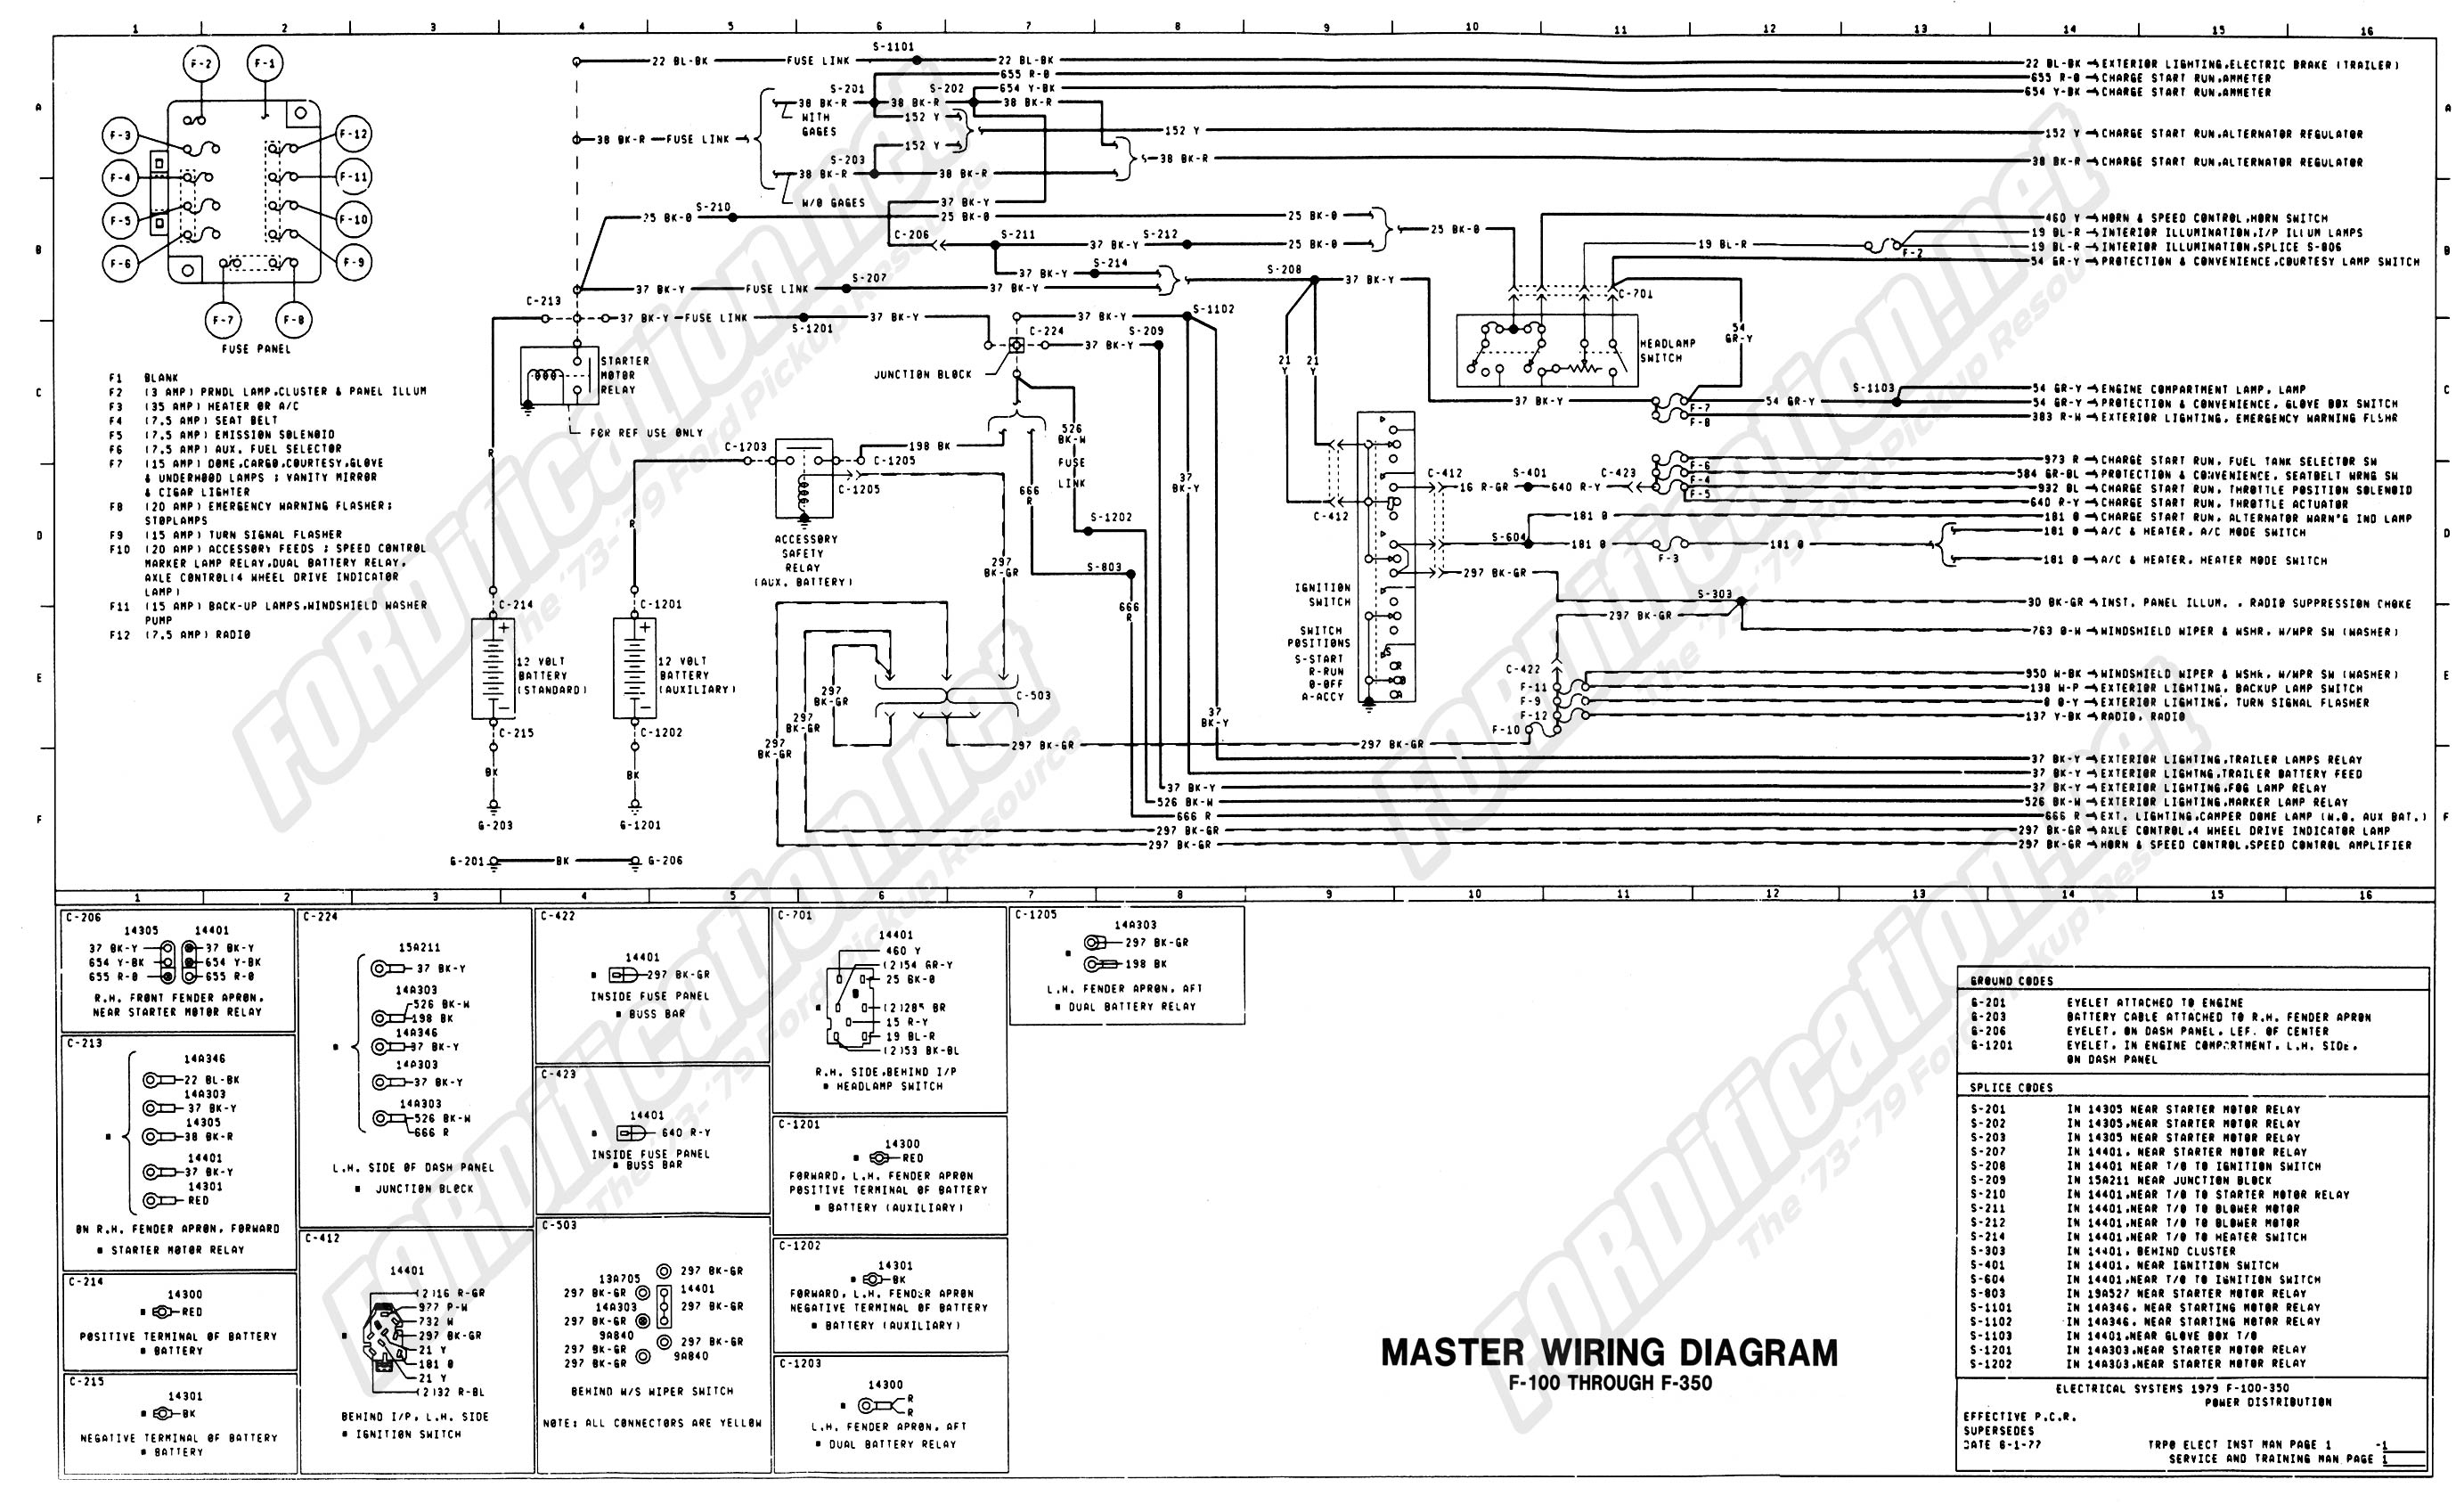 International Wiring Schematics | Wiring Schematic Diagram on